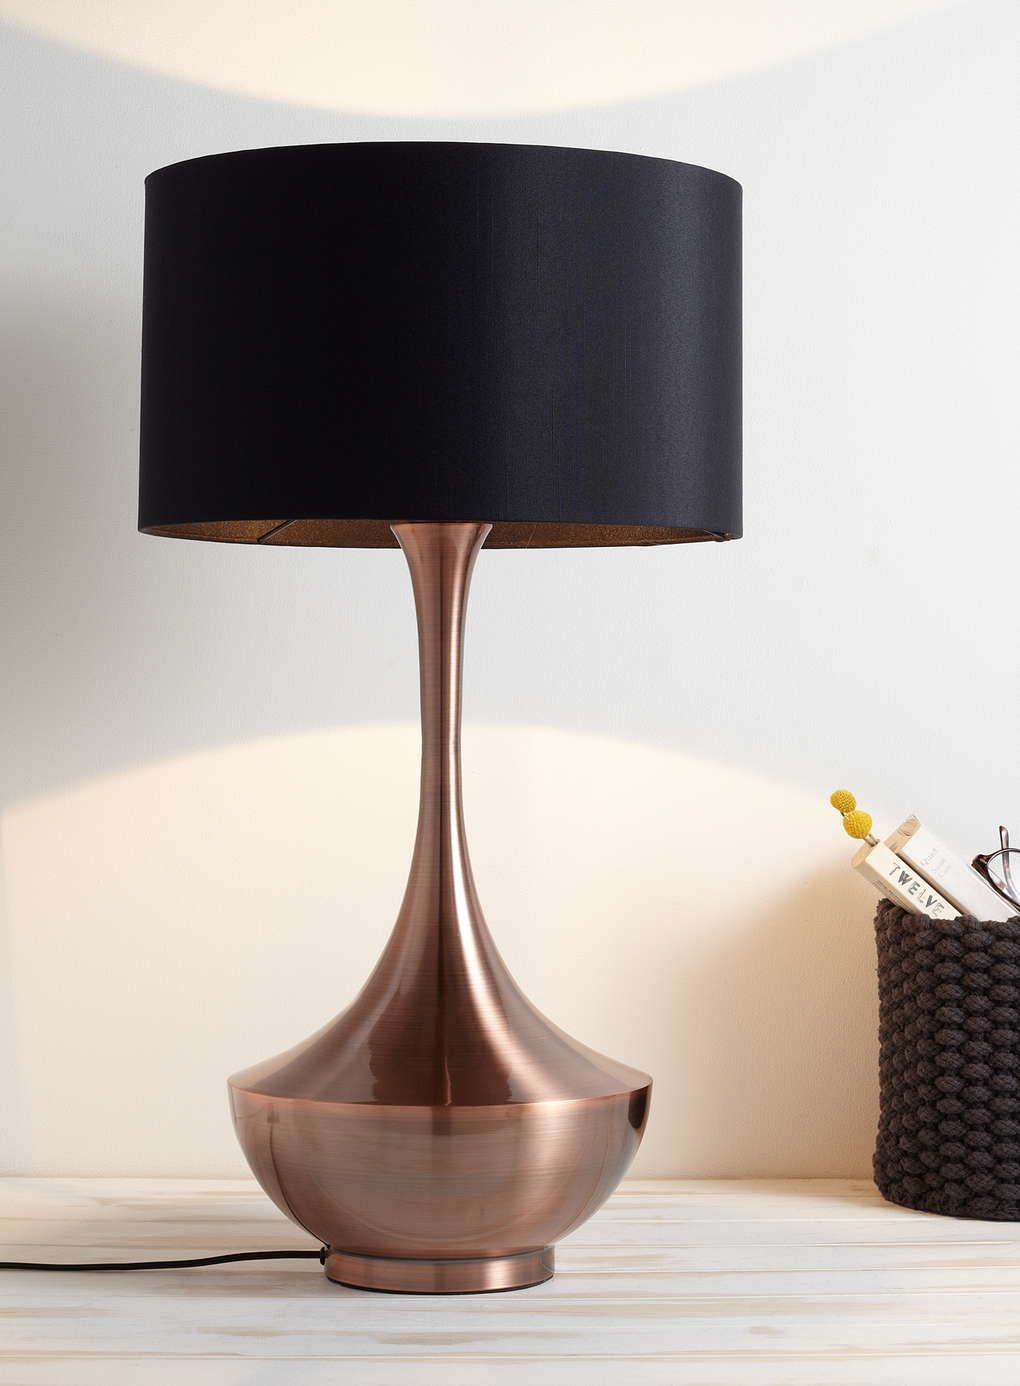 Copper Brock Table Lamp Bhs Copper Table Lamp Table Lamp